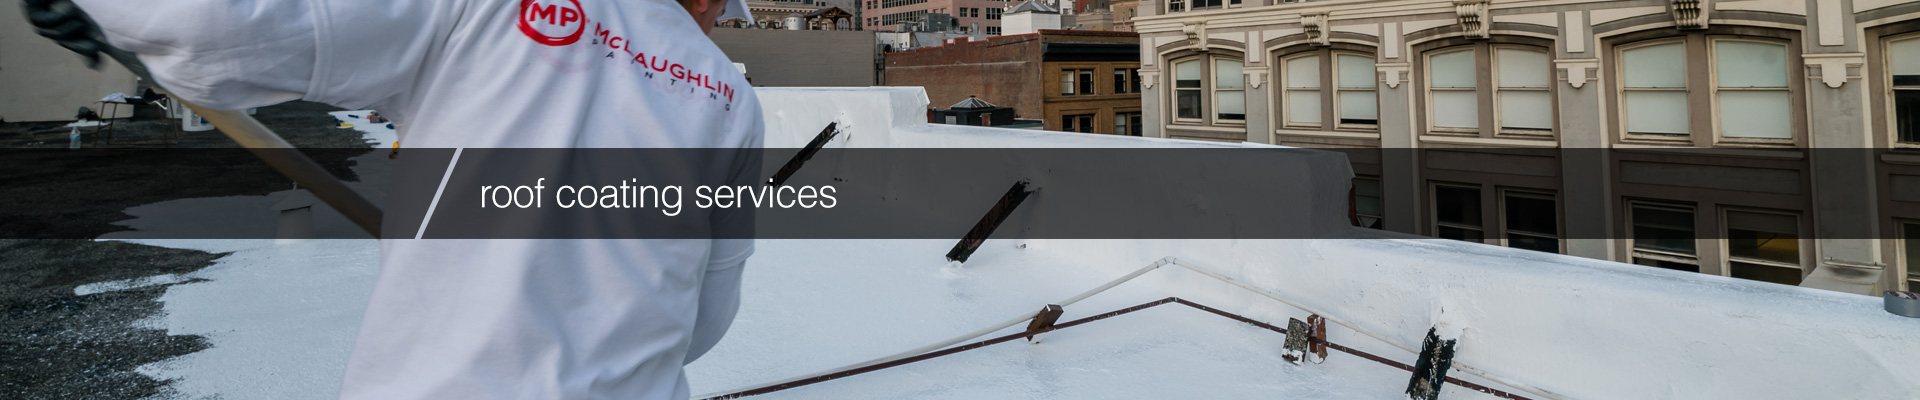 mclaughlin-roof-coating-services